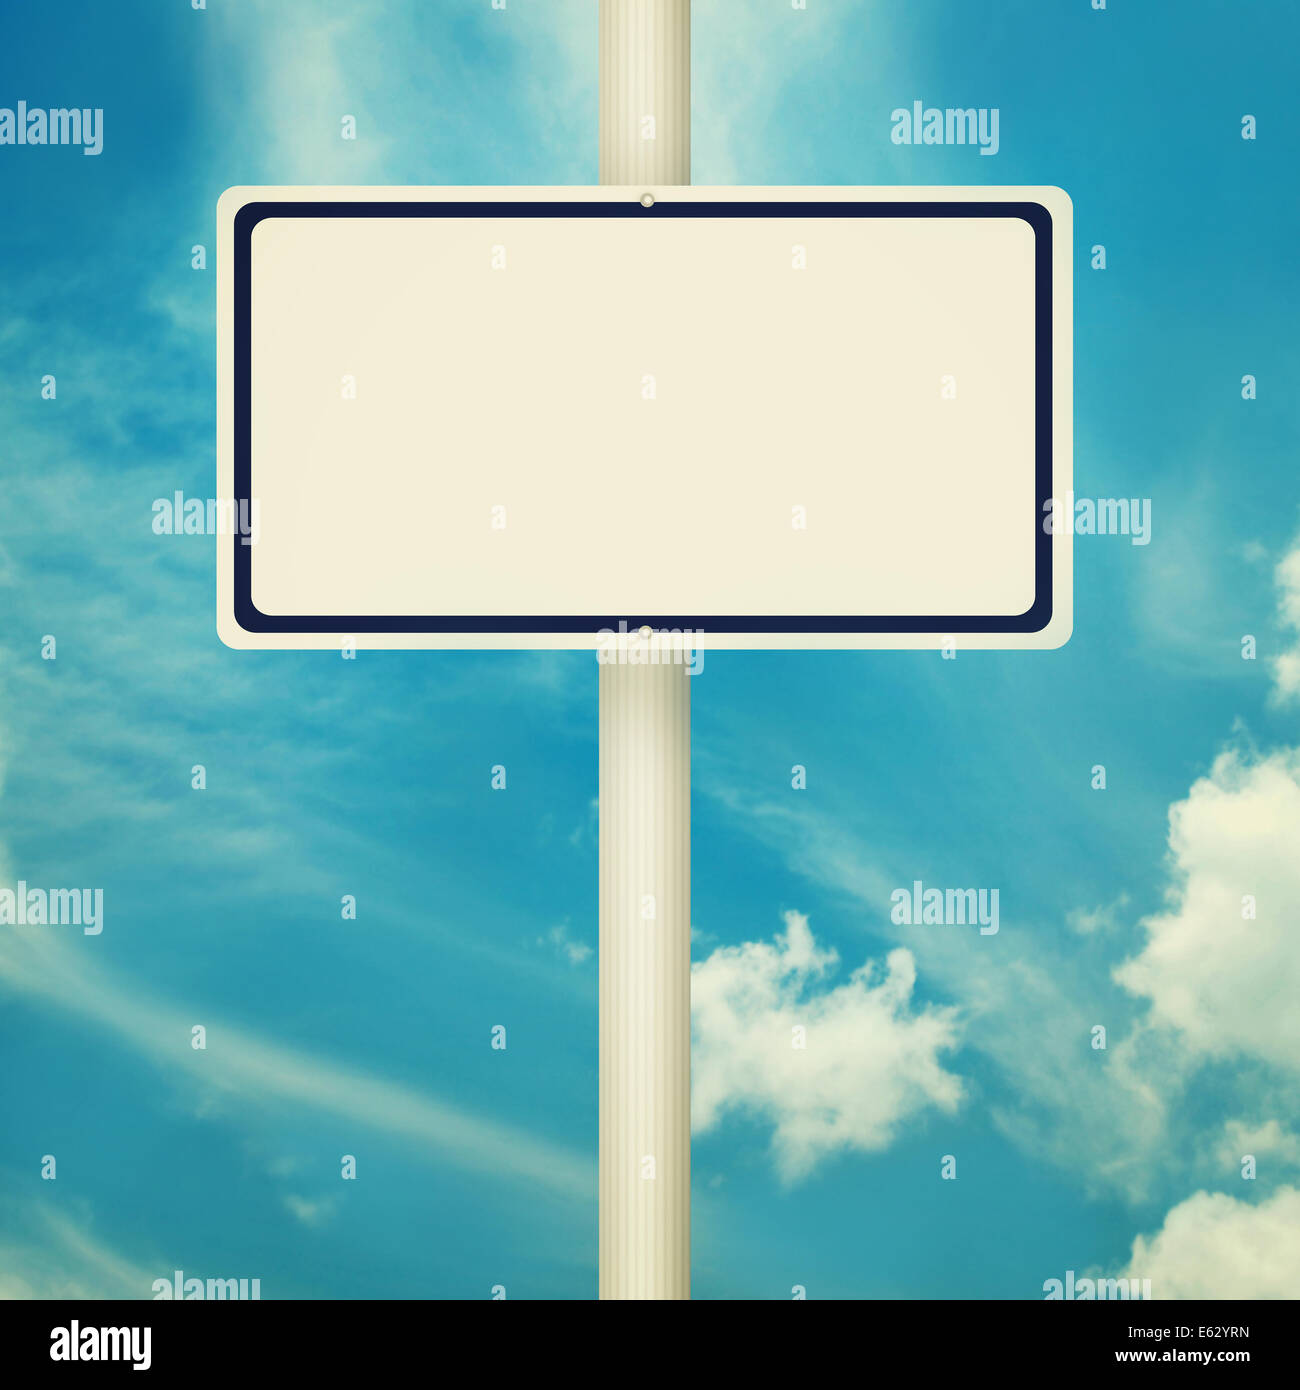 Blank Road Signs Stock Photos & Blank Road Signs Stock ...